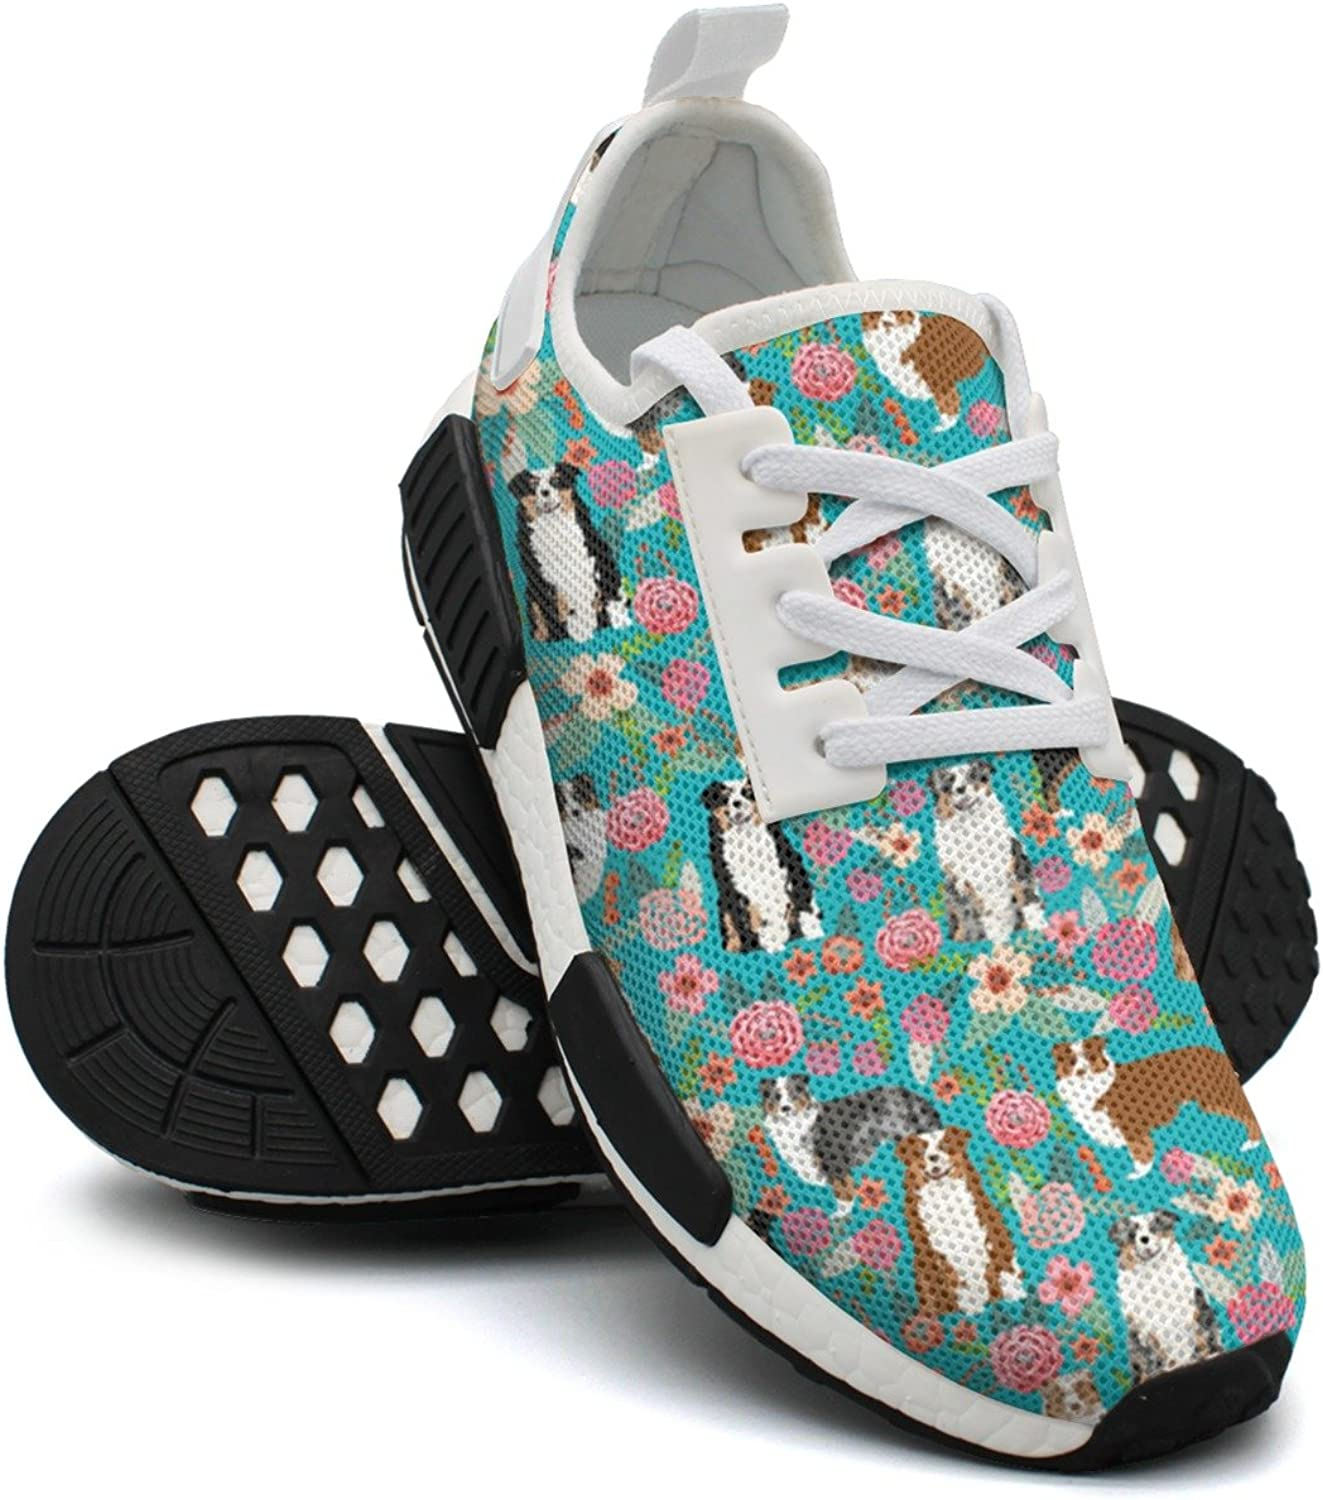 Ktyyuwwww Attractive Women colorful Cool Australian Shepherd Dog Floral Navy Fashion Running shoes